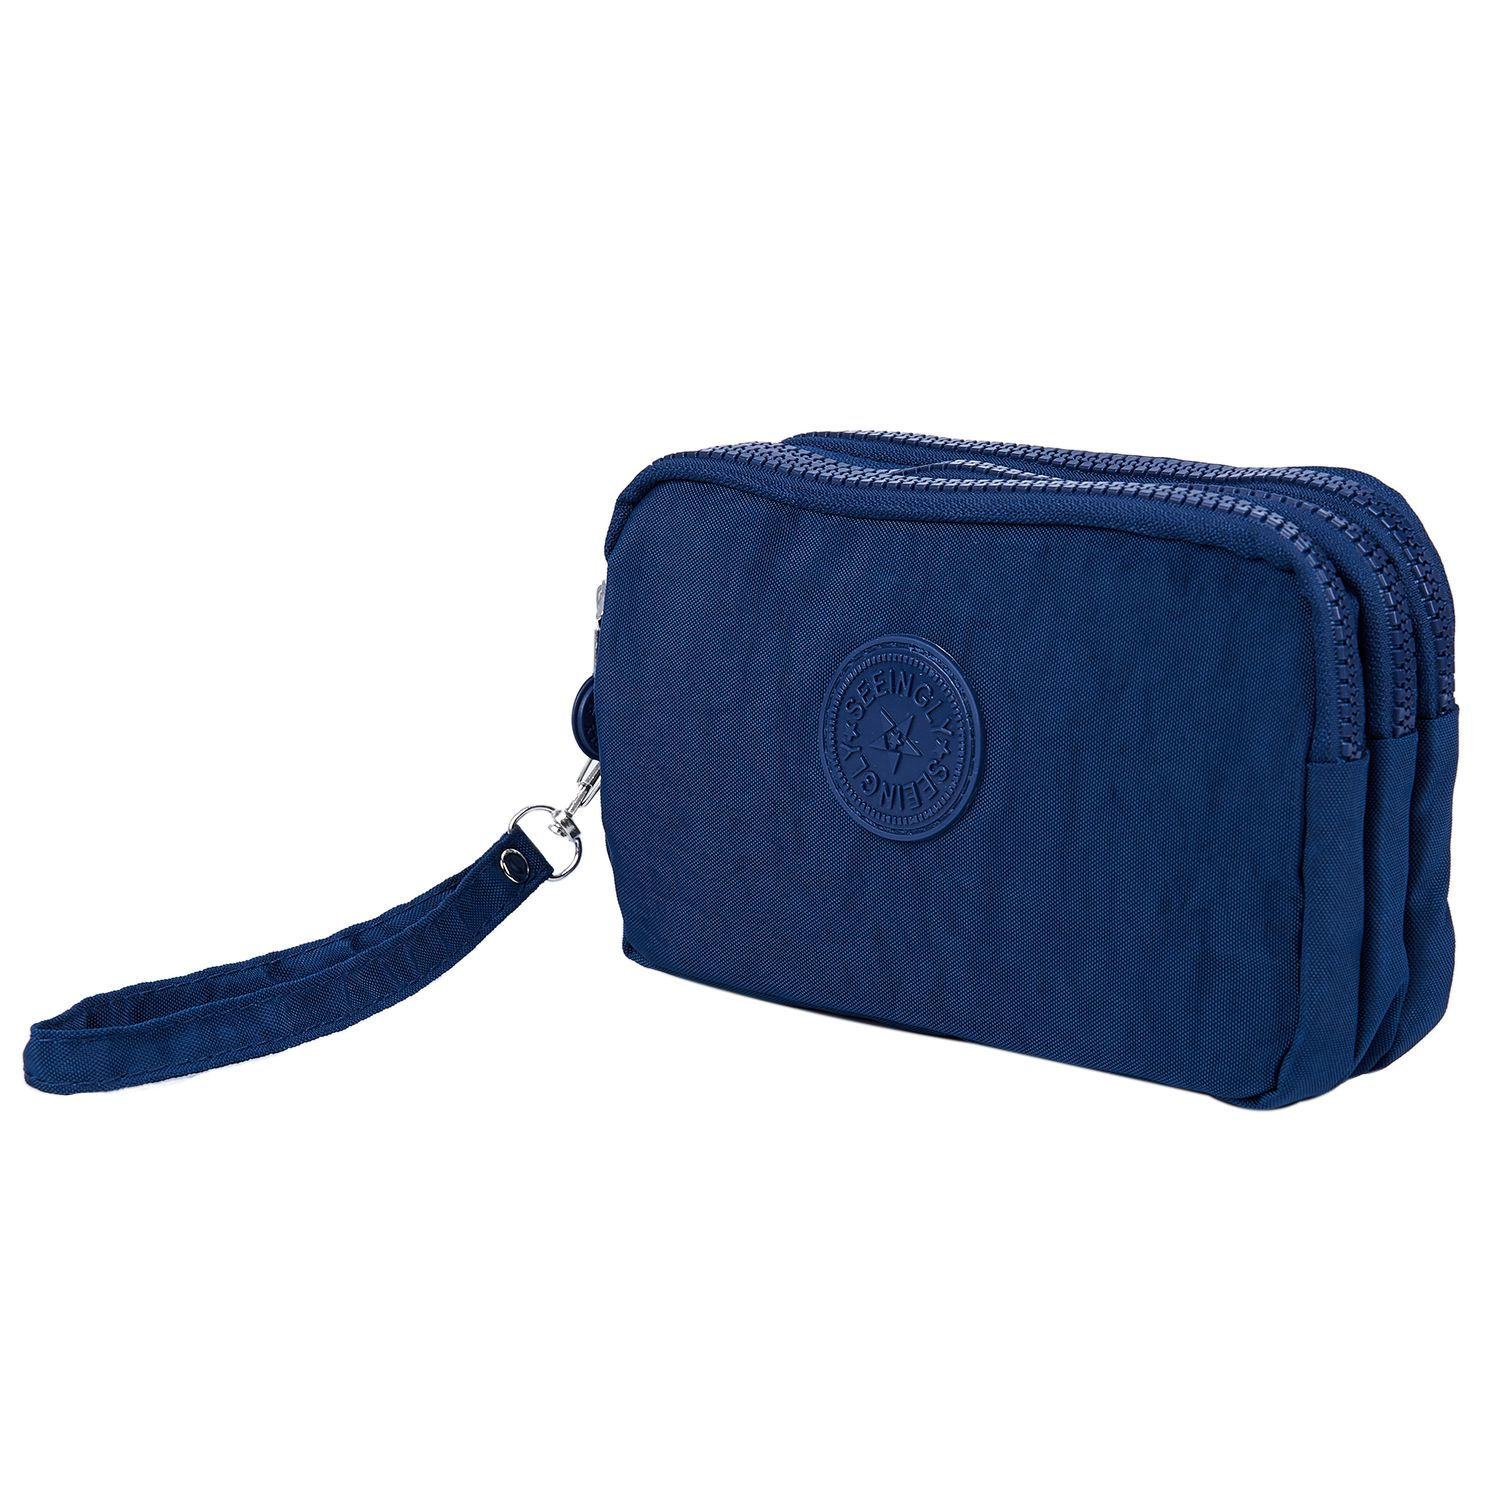 FGGS Women Small Wallet Washer Wrinkle Fabric Phone Purse Three Zippers Portable Make Up bag